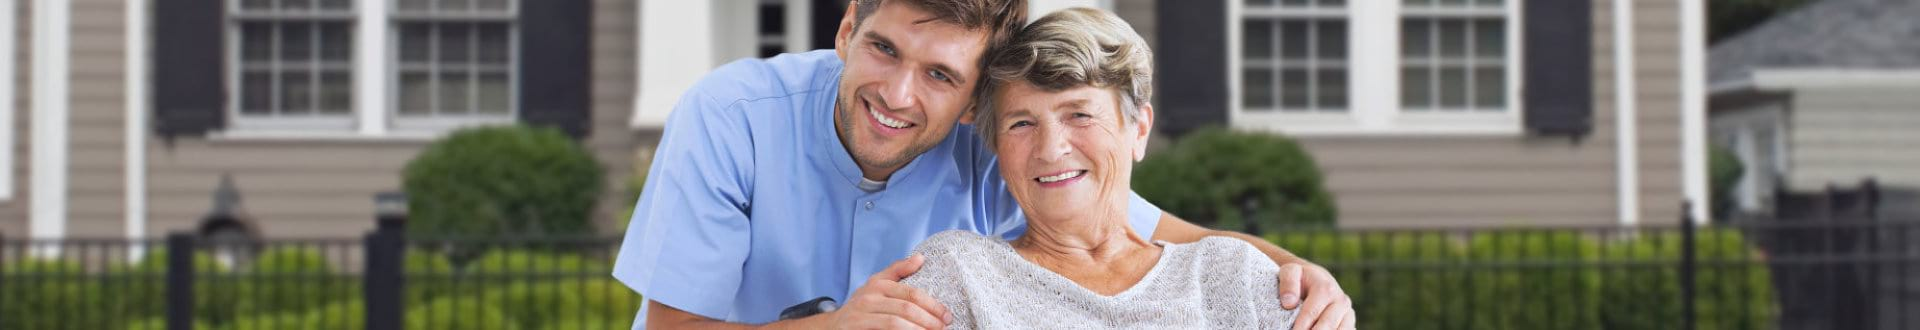 male caregiver with senior woman on wheelchair smiling